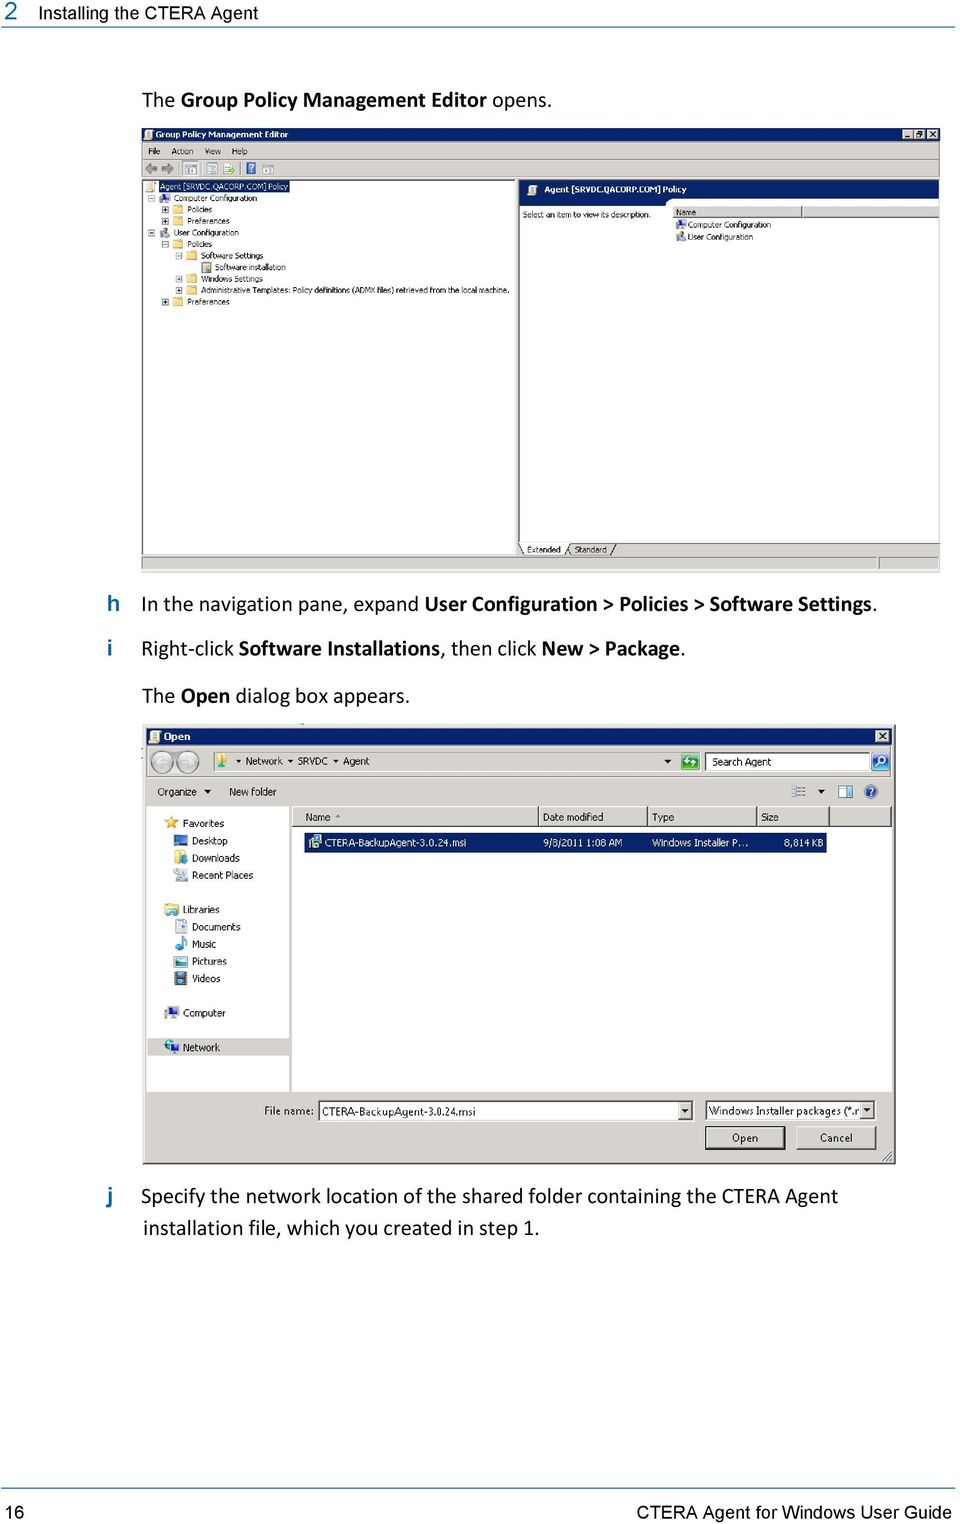 i Right-click Software Installations, then click New > Package. The Open dialog box appears.